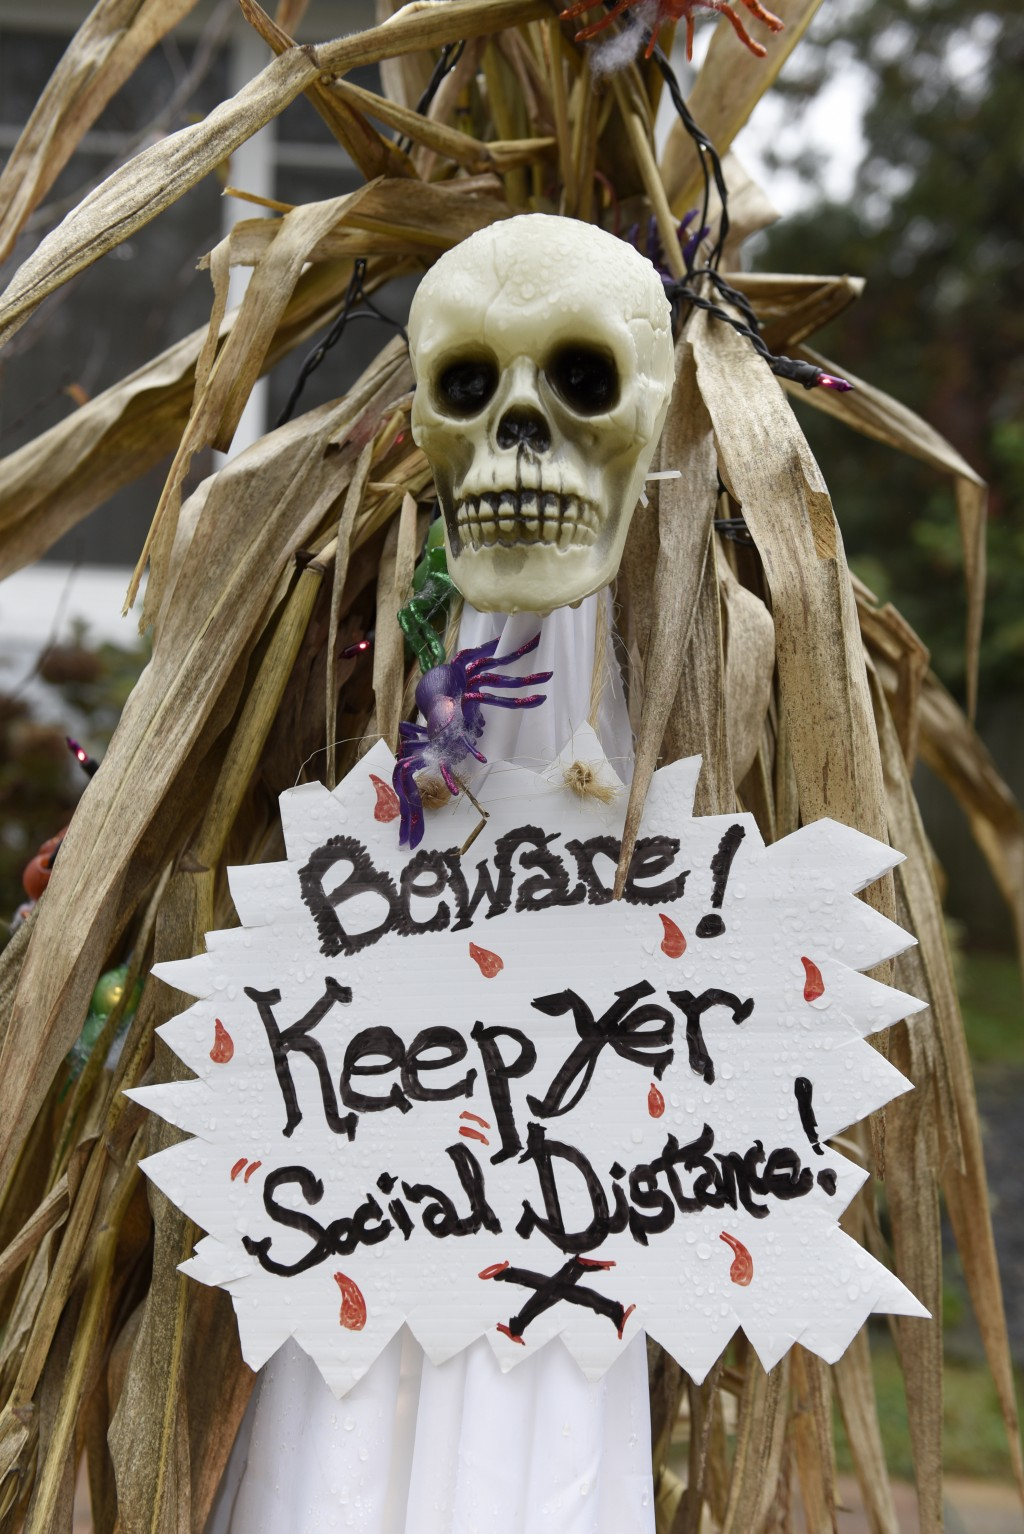 Halloween decorations are seen at the home of Carol McCarthy, reminding people to be safe while trick-or-treating during the COVID-19 pandemic, Monday...